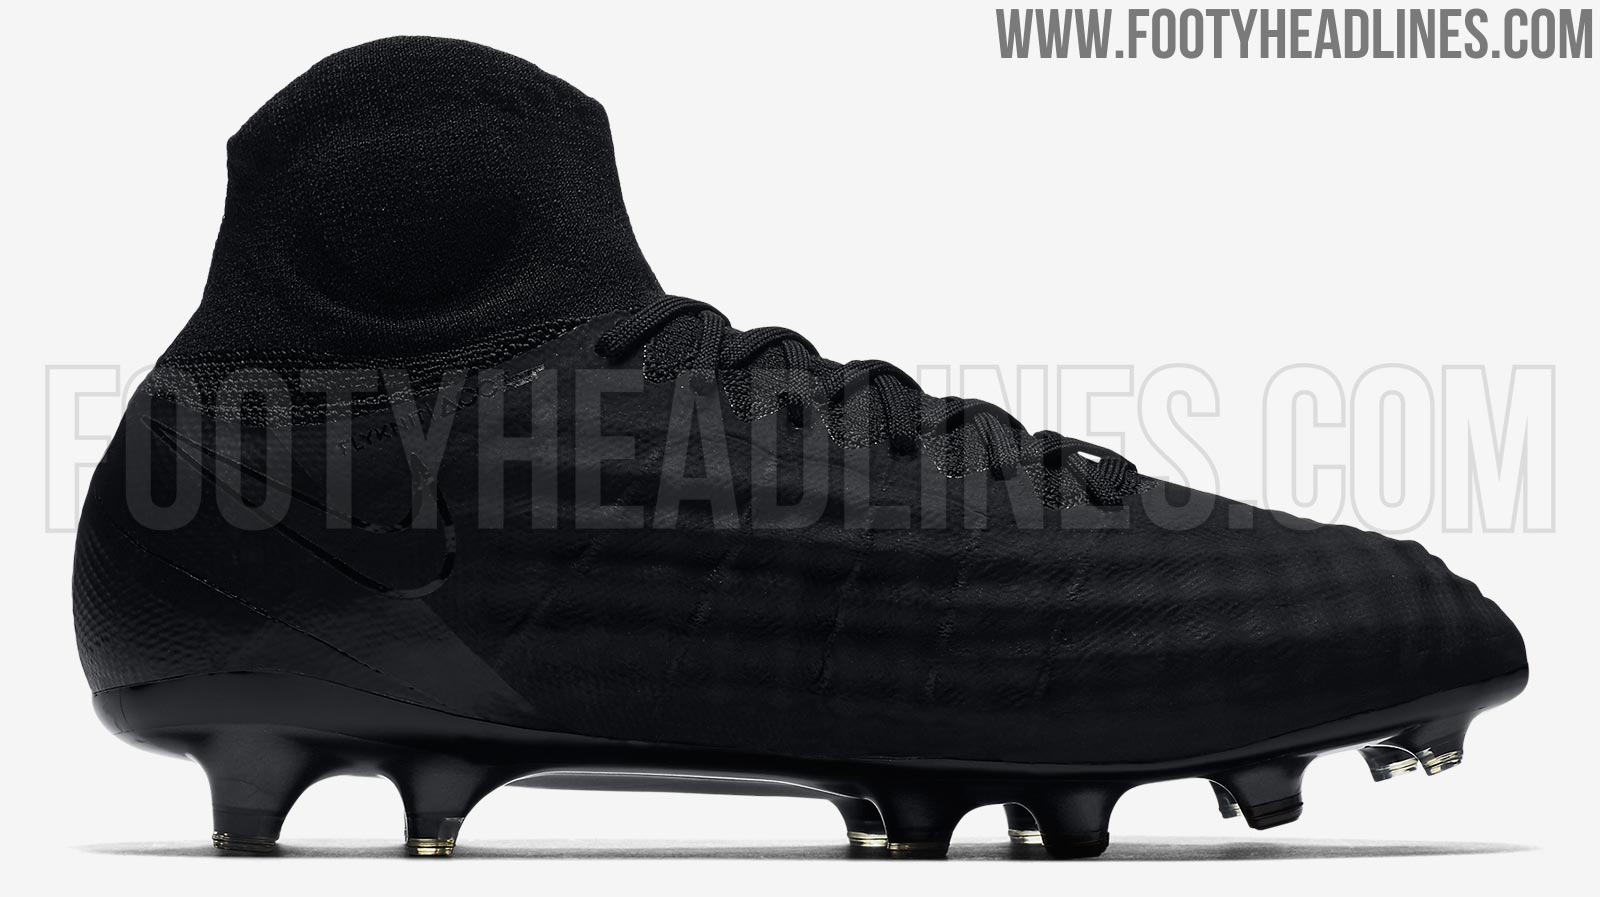 9a23415d0 ... Blackout Nike Magista Obra II Academy Pack Boots Released - Footy Hea  ...